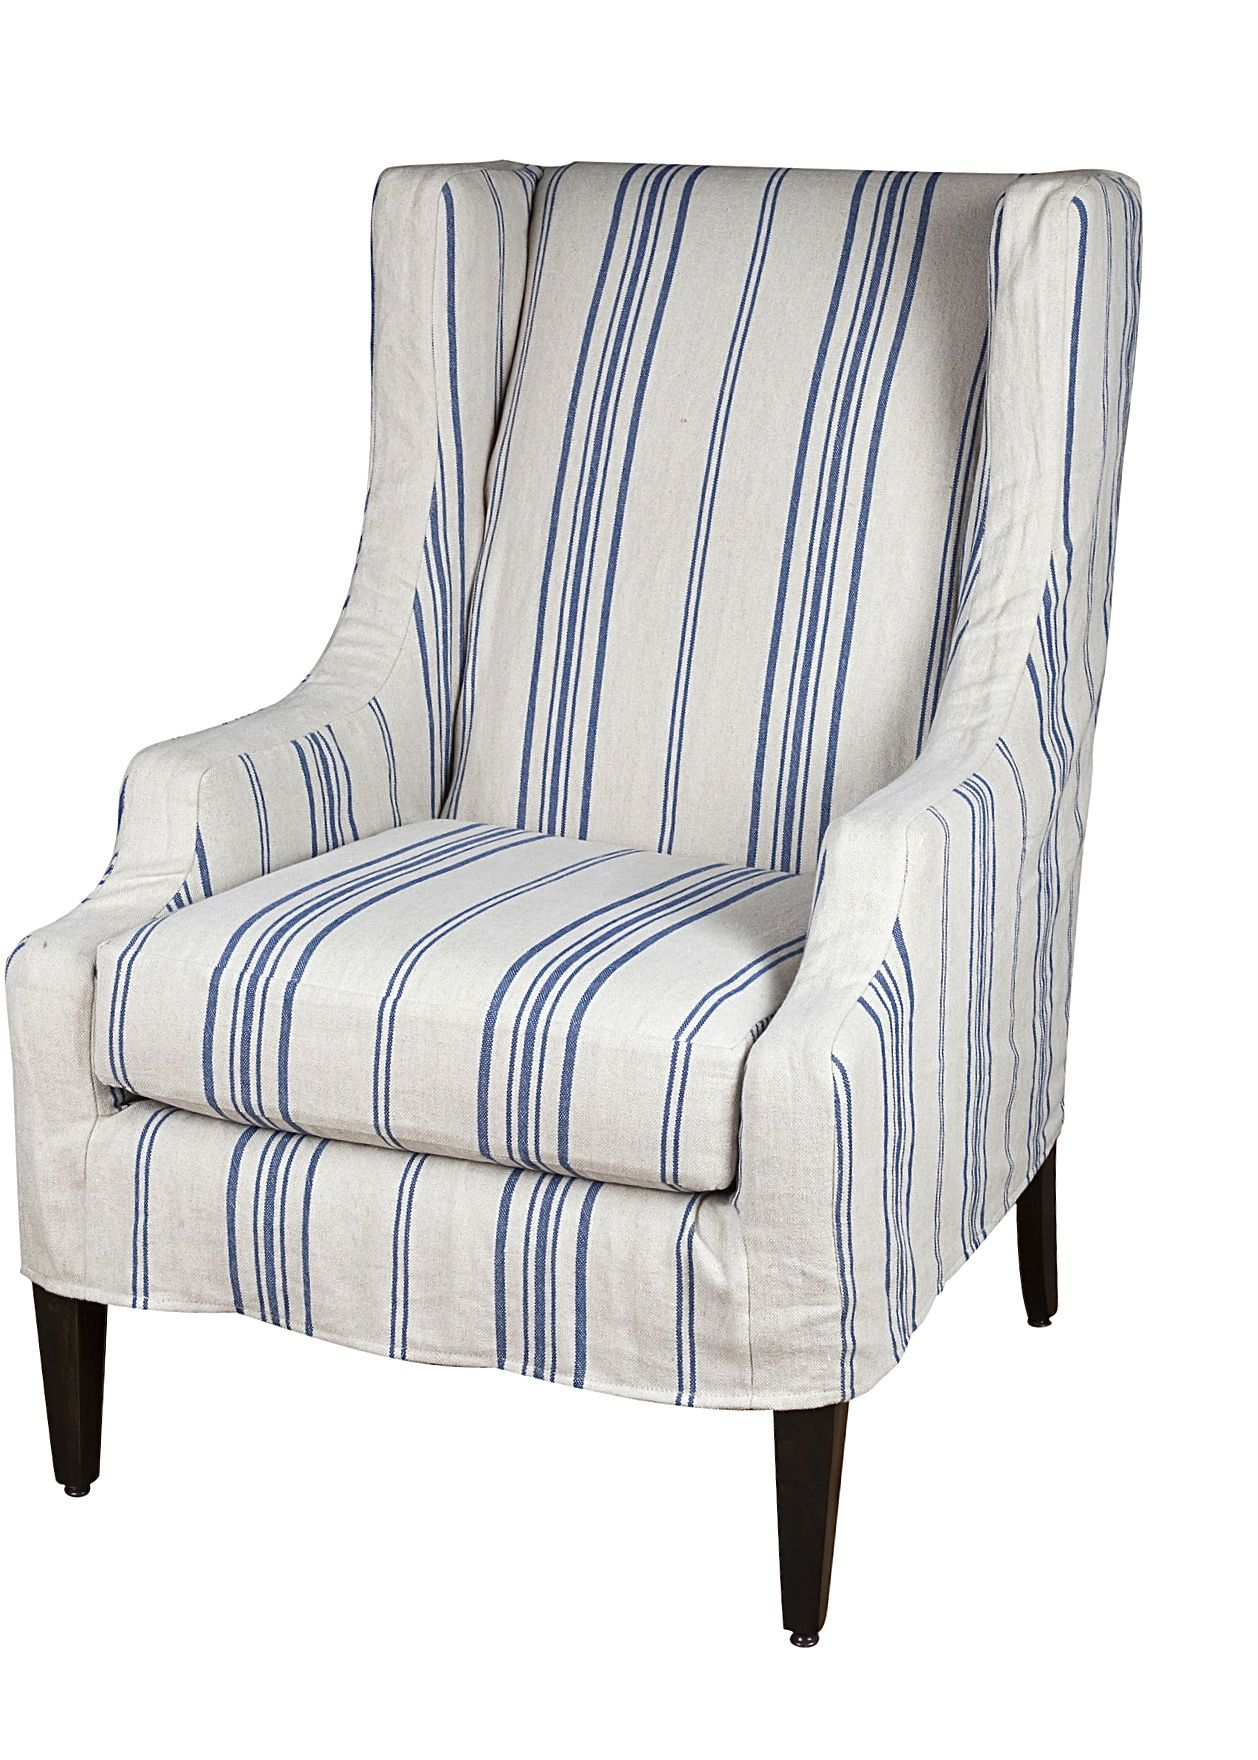 Wing Chairs For Living Room Folding Walmart Camping Chair Rooms Pinterest